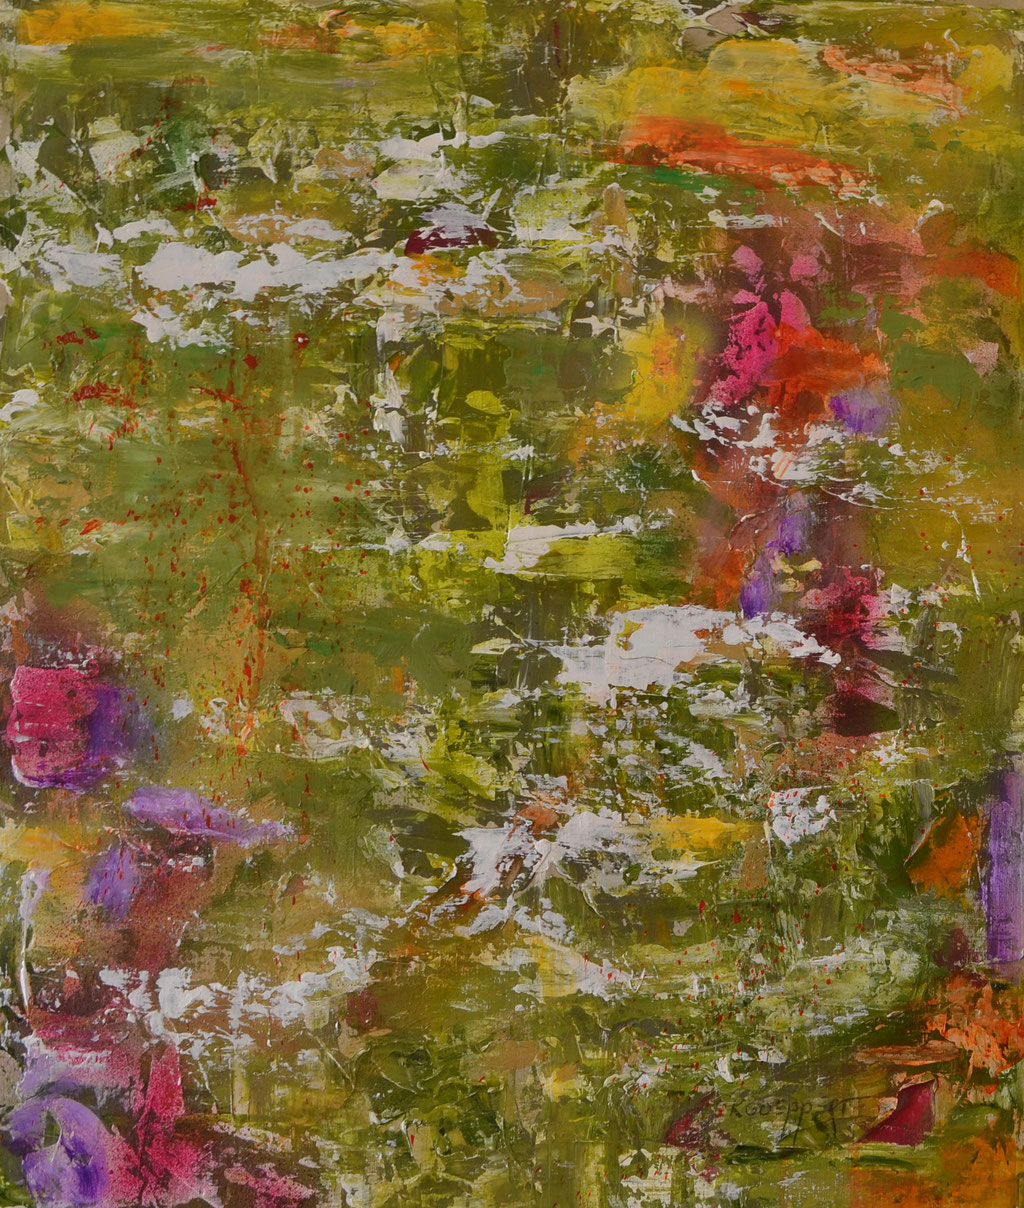 Spring Sessions III 50 x 70 cm acryl on paper